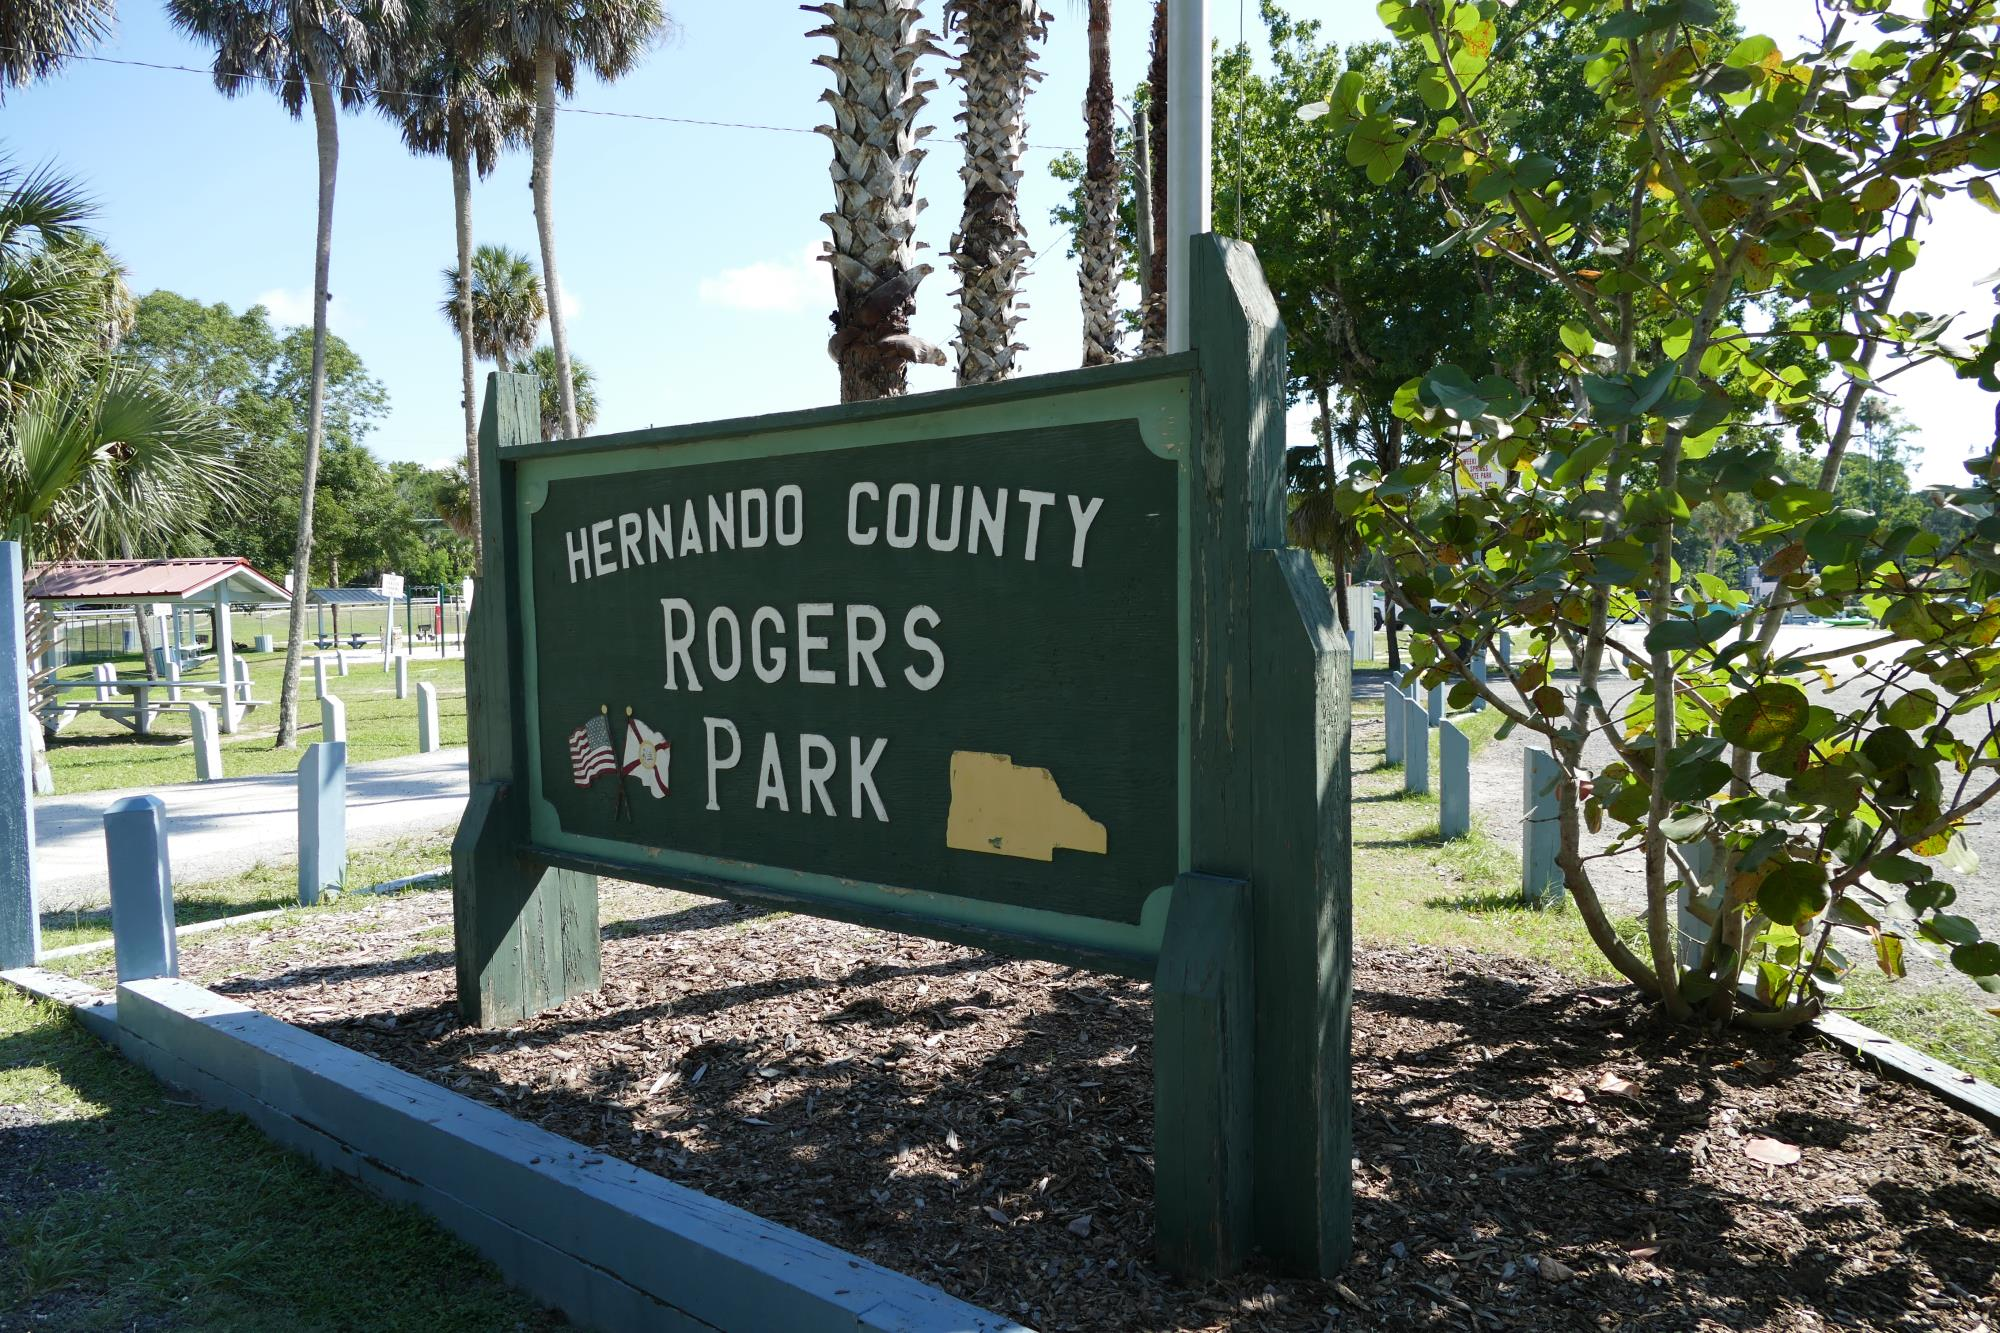 Rogers Park | Parks and Preserves | Hernando County, FL on map of ferry, map of crane, map of lindstrom, map of whitaker, map of axtell, map of mabelvale, map of bottineau, map of winsted, map of carter, map of morr, map of carr, map of matthews, map of hubbard, map of st anthony, map of waite park, map of crittenden county, map of null, map of bankhead, map of andrews, map of shore,